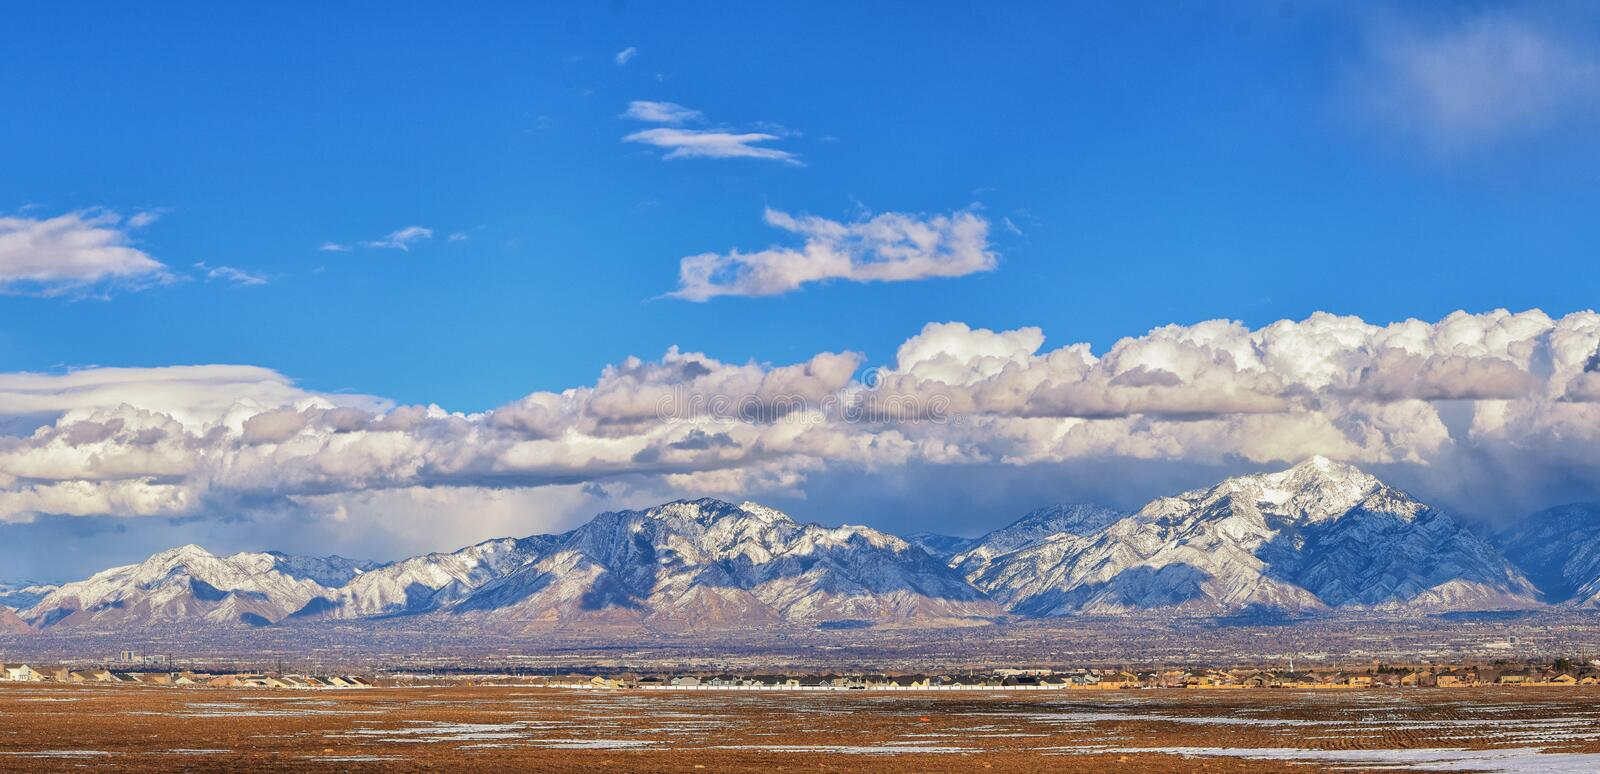 Winter-Panoramablick des Schnees bedeckte Wasatch Front Rocky Mountains, Great- Salt Laketal und Cloudscape von Bacchus Highway m lizenzfreie stockfotografie